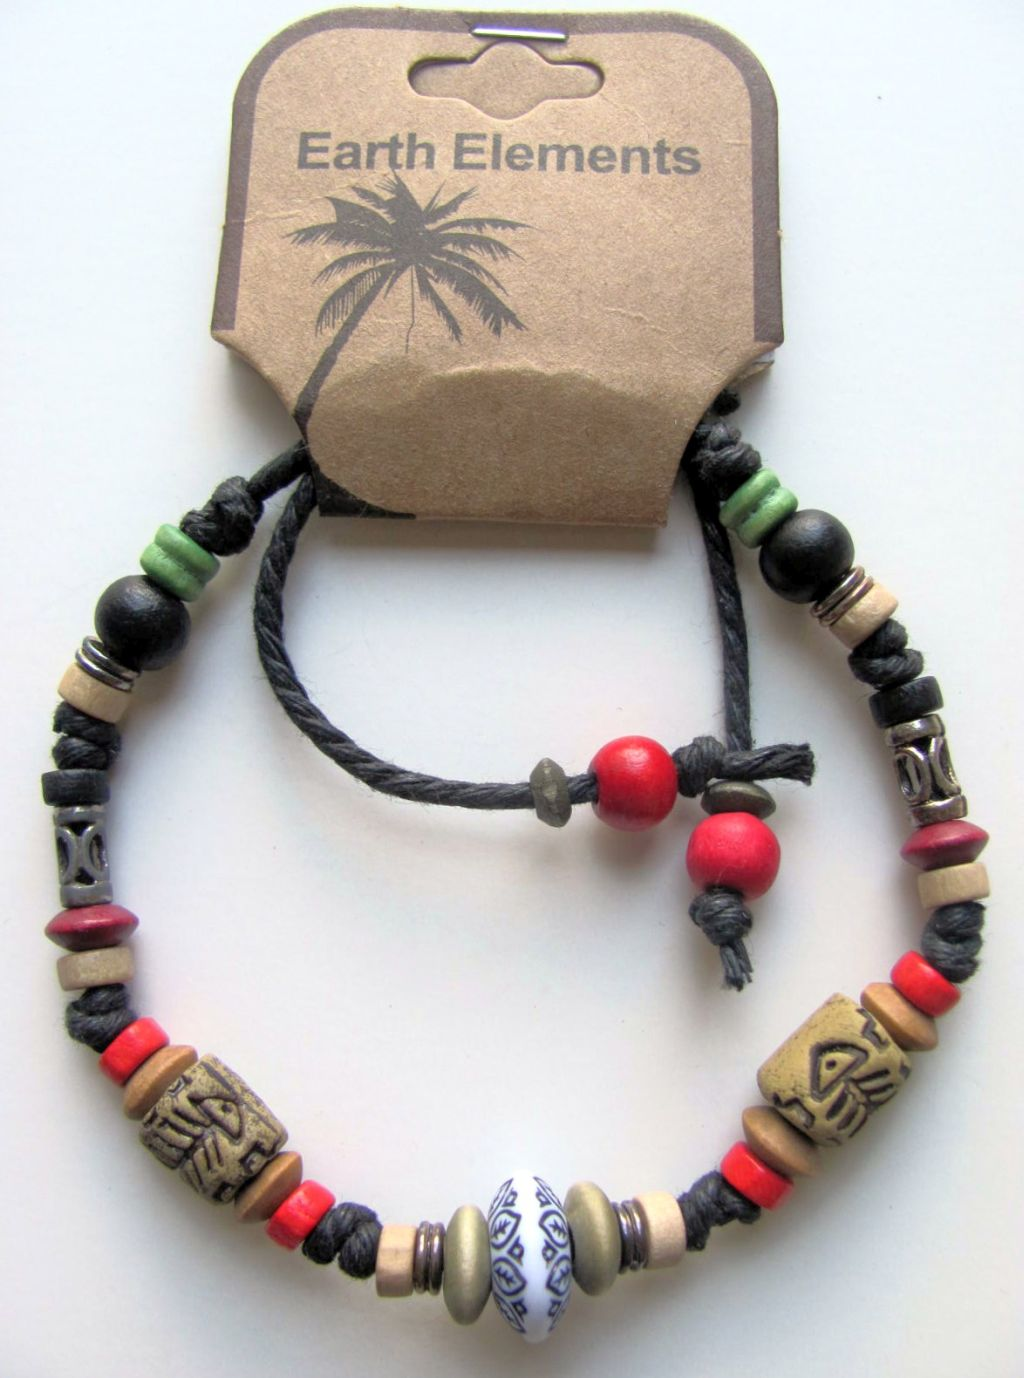 Bermuda Earth Elements Spiritual Beaded Bracelet, Beach Surfer Men's Jewelry